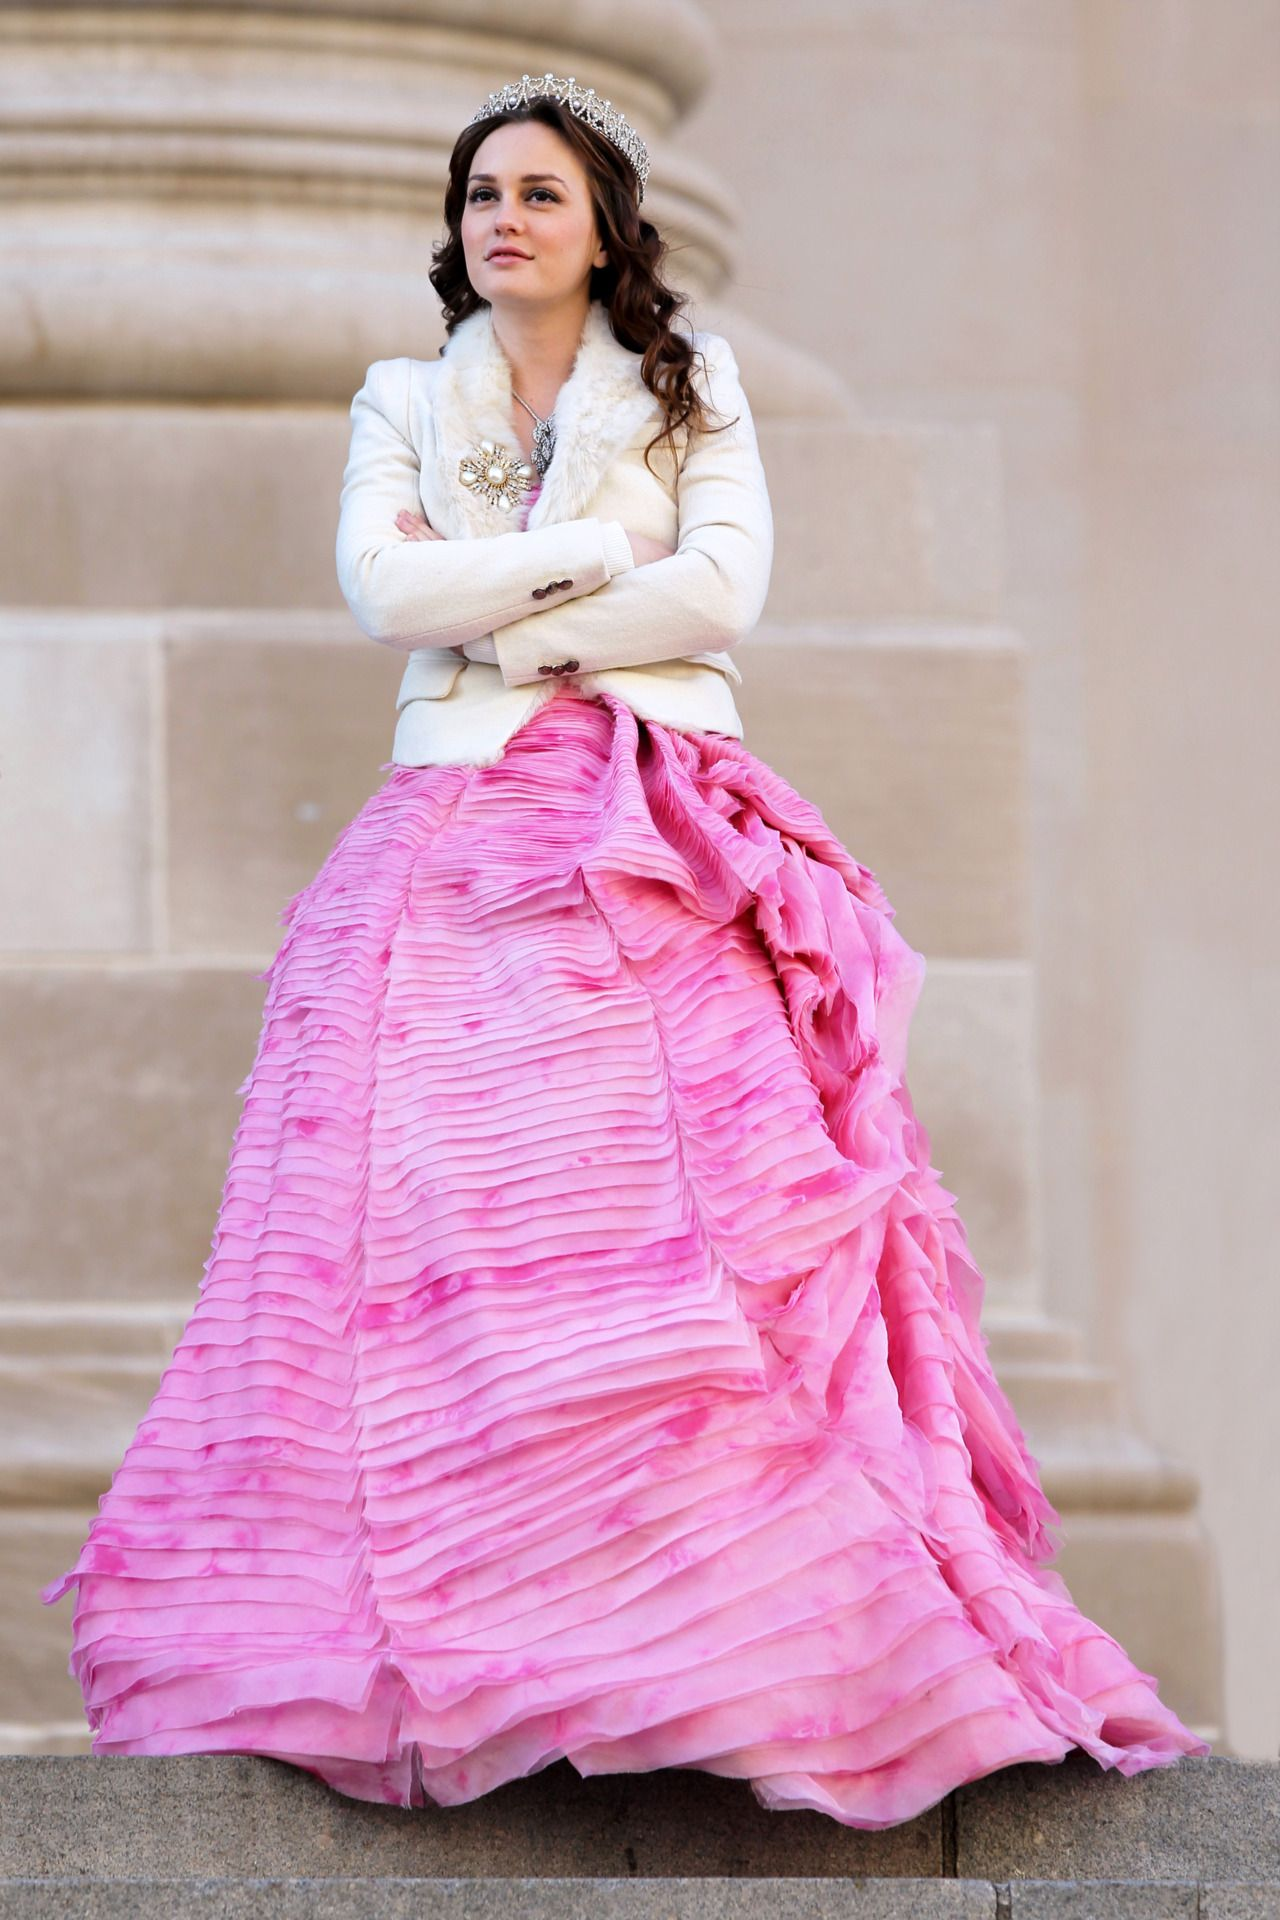 christopherpeterson: Actress Leighton Meester, wearing a pink gown ...